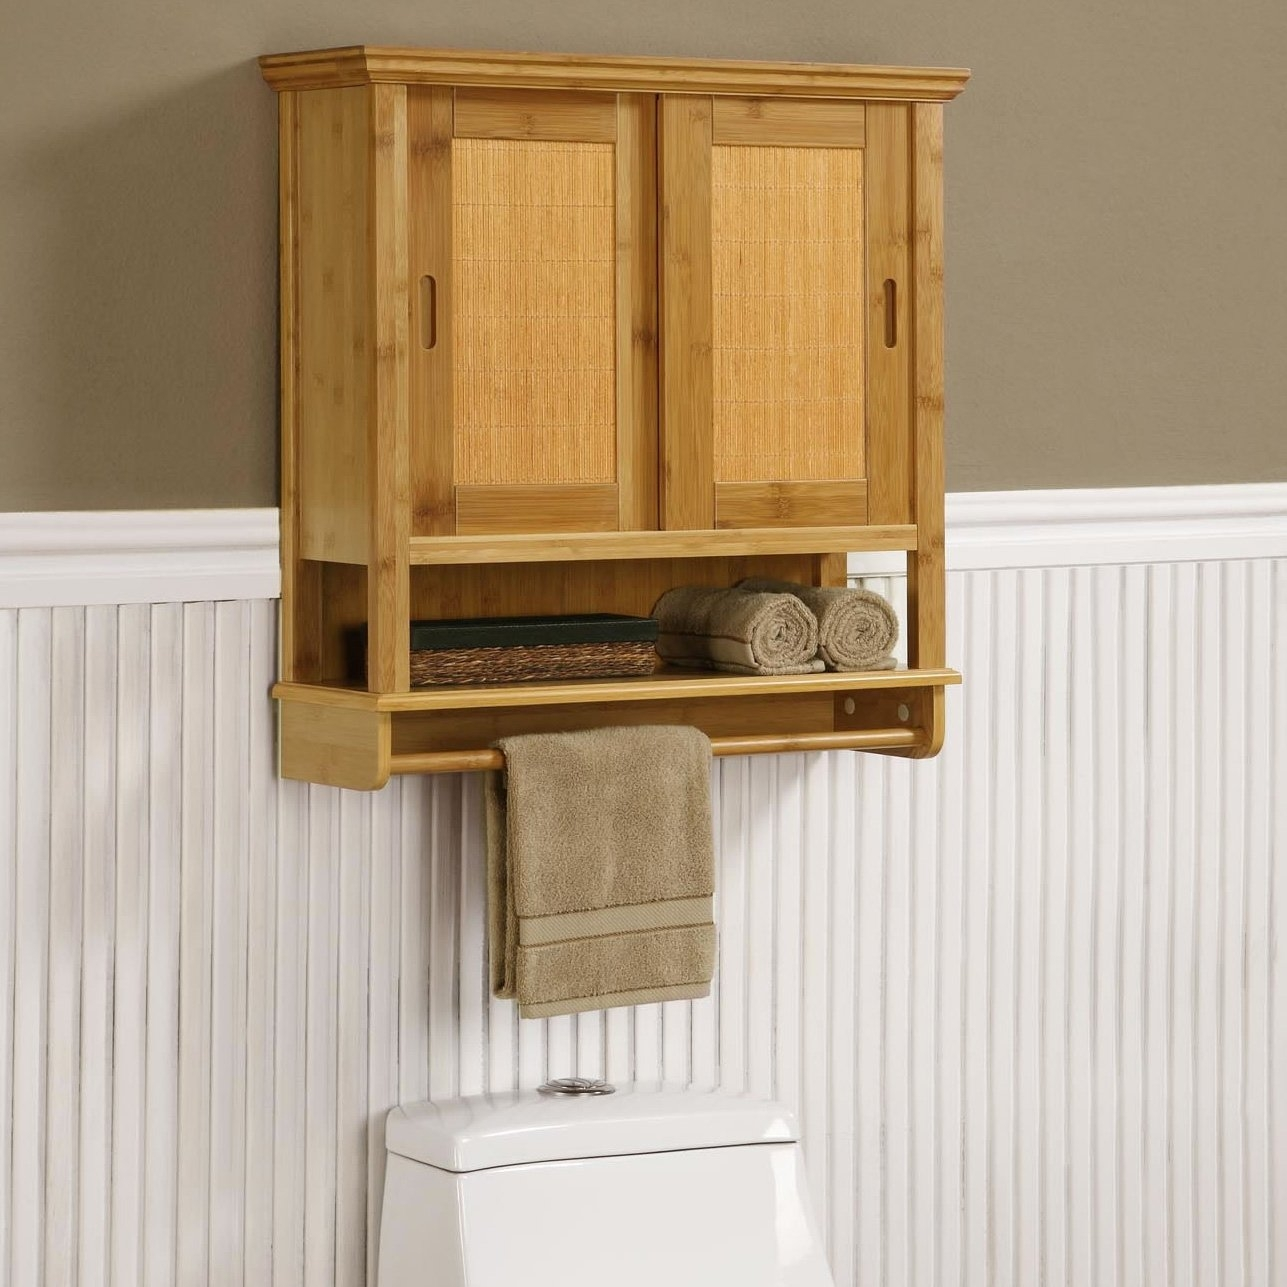 Permalink to Wall Storage Cabinets For Bathroom